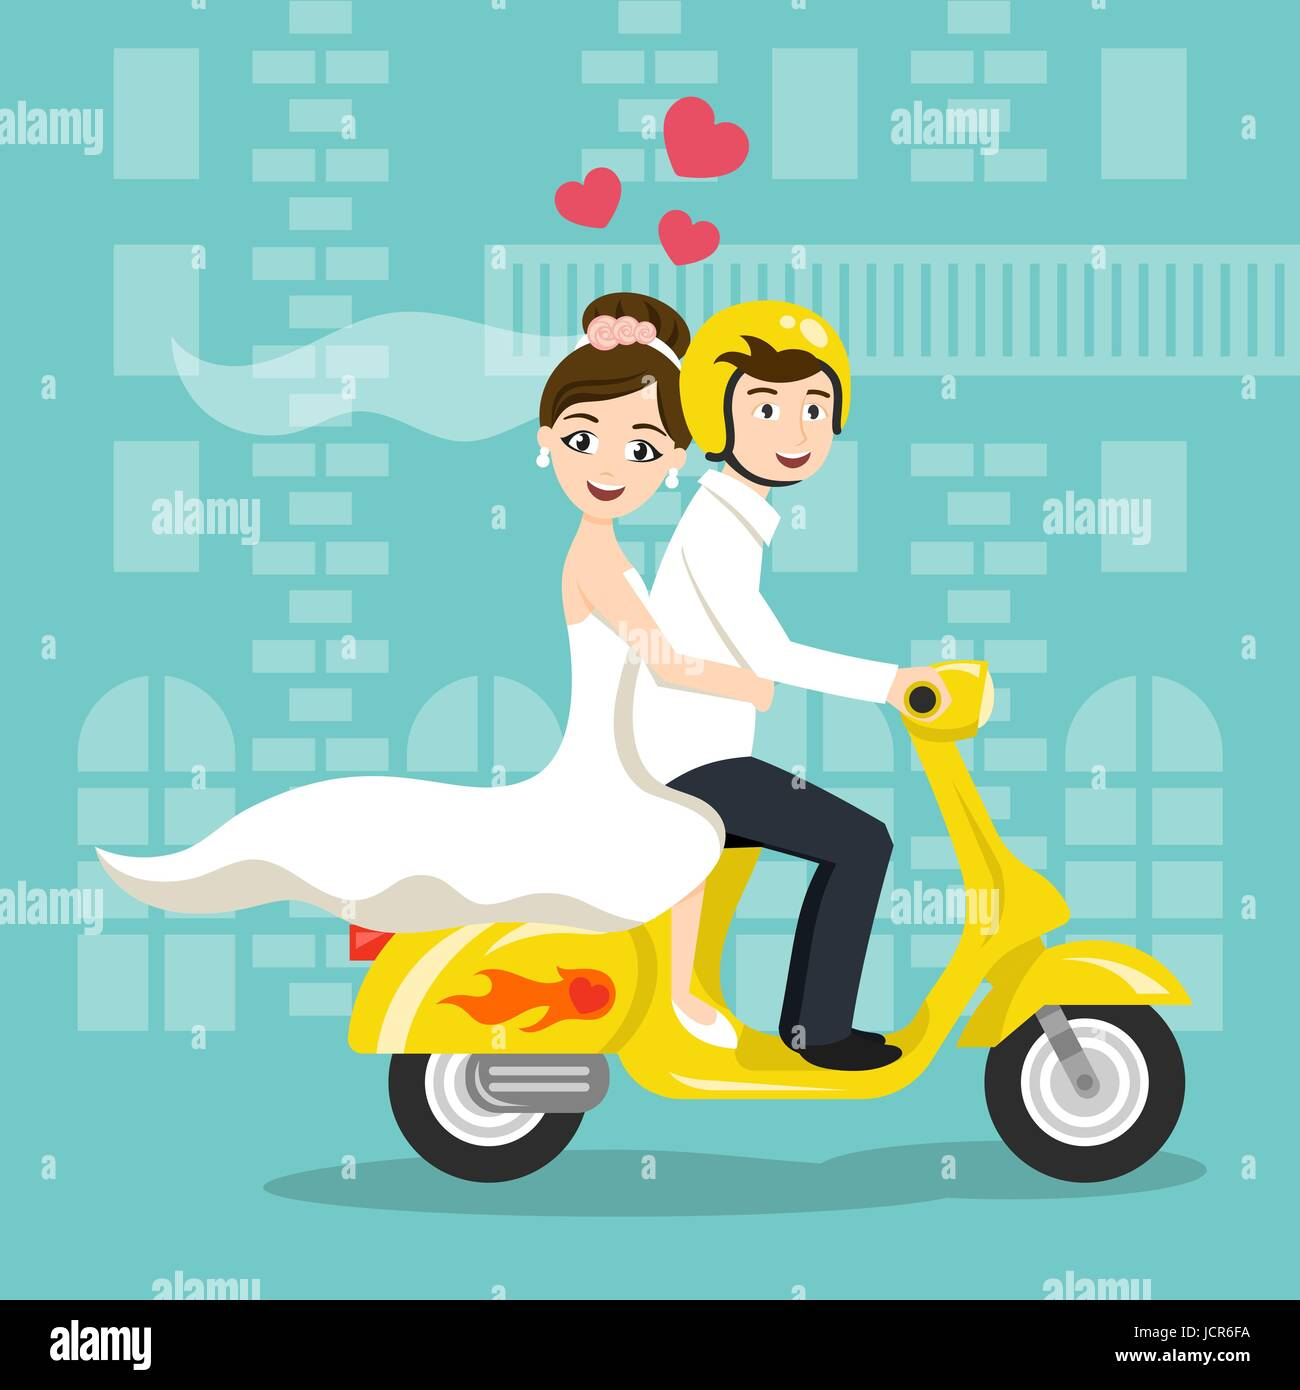 Vector Illustration Of Young Happy Newlyweds Bride And Groom Riding On Scooter Retro Style Transport Vintage Looking Moped Honeymoon Print